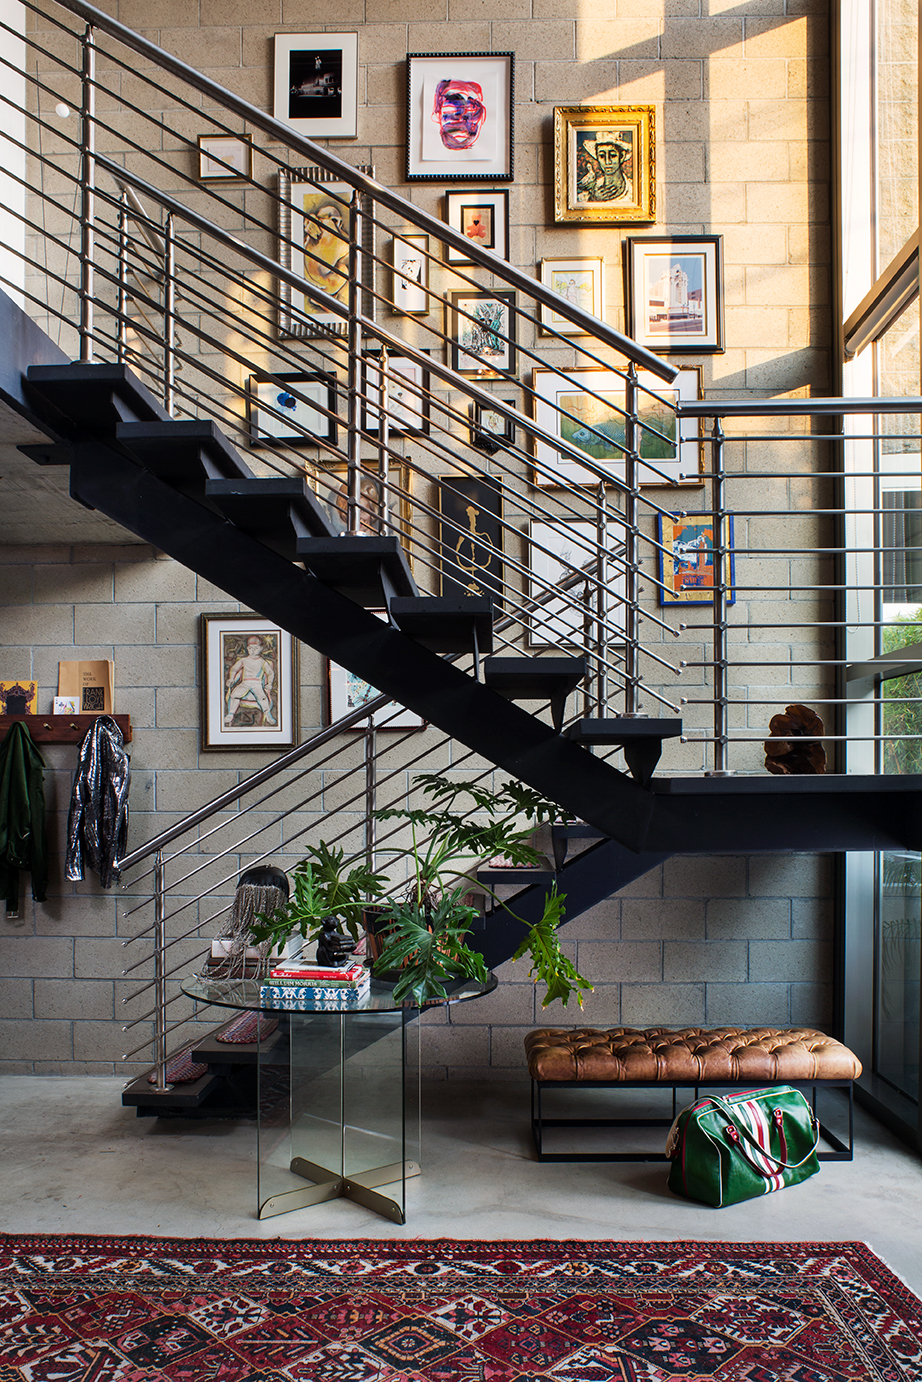 The Nordroom - an industrial loft packed with textiles and art